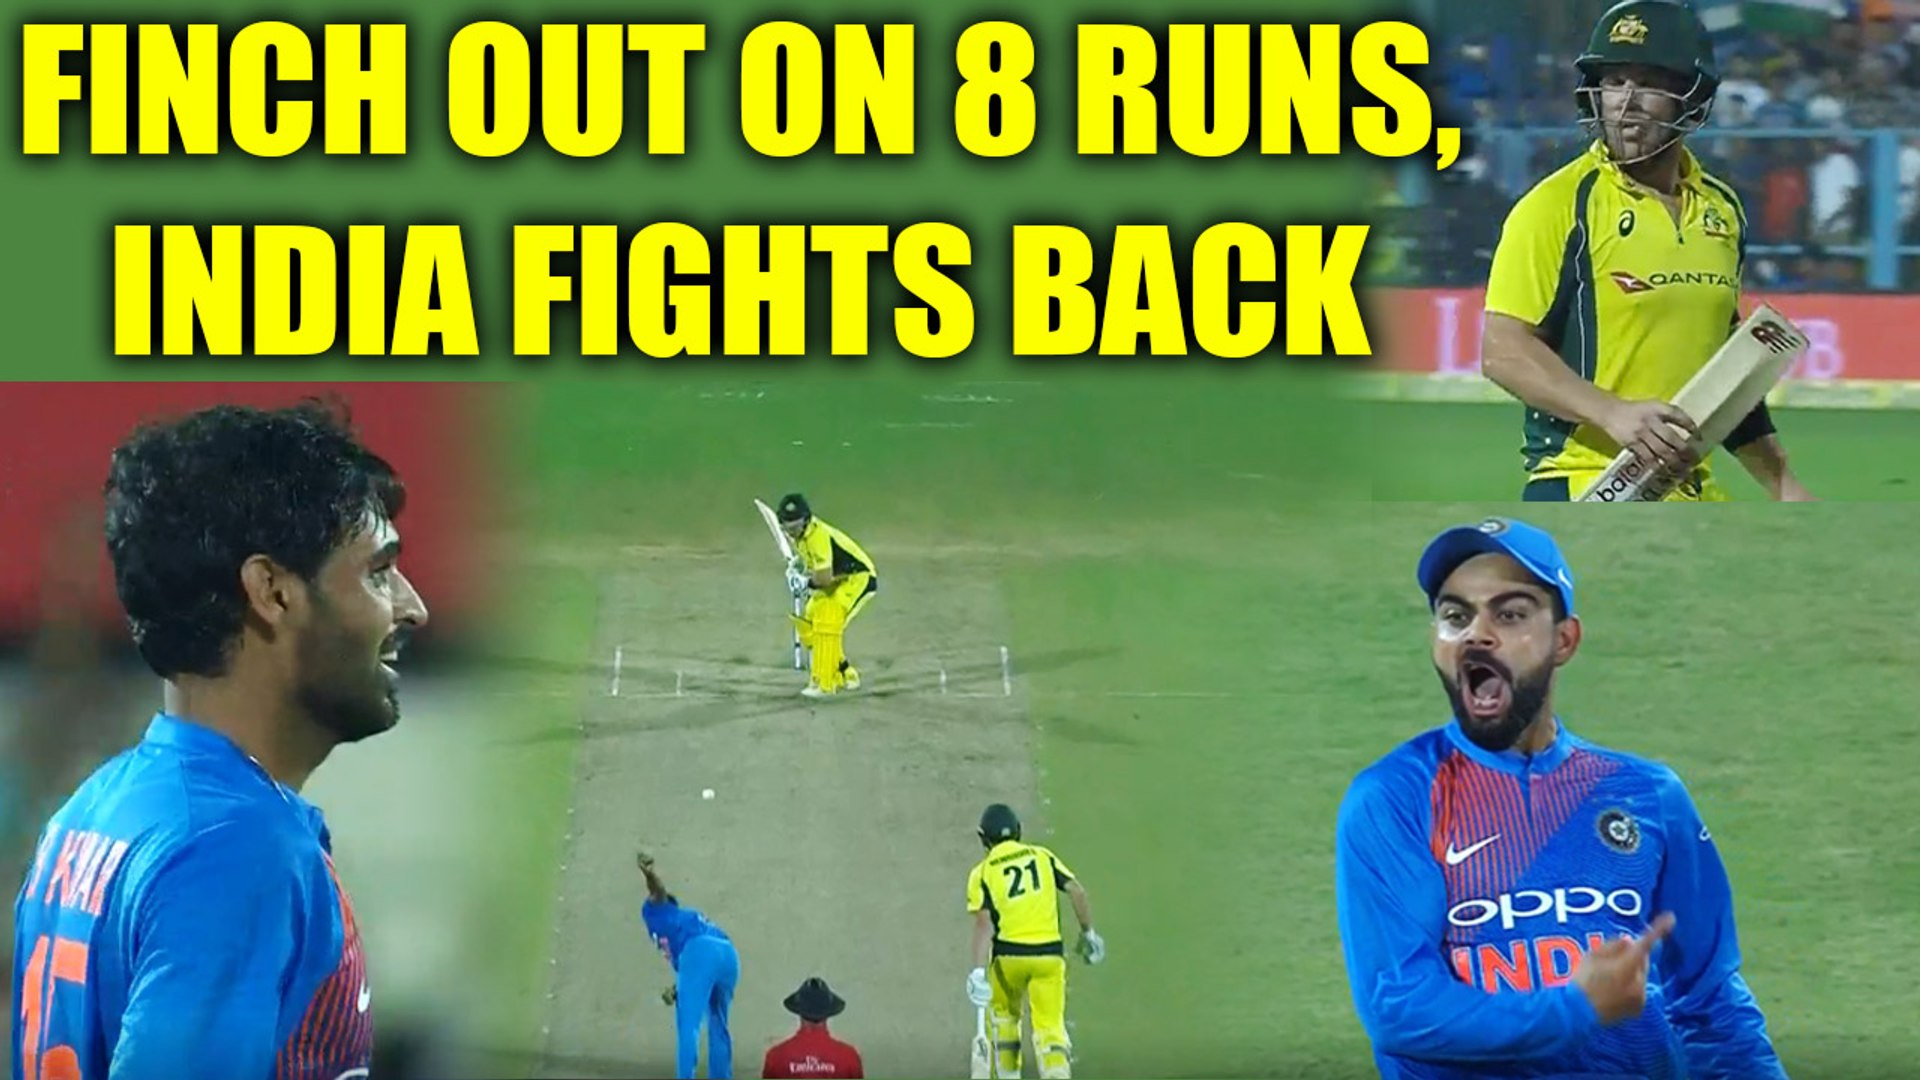 India vs Australia 2nd T20I : Aaron Finch out on balling of Bhuvneshwar Kumar, Kohli takes catch | O